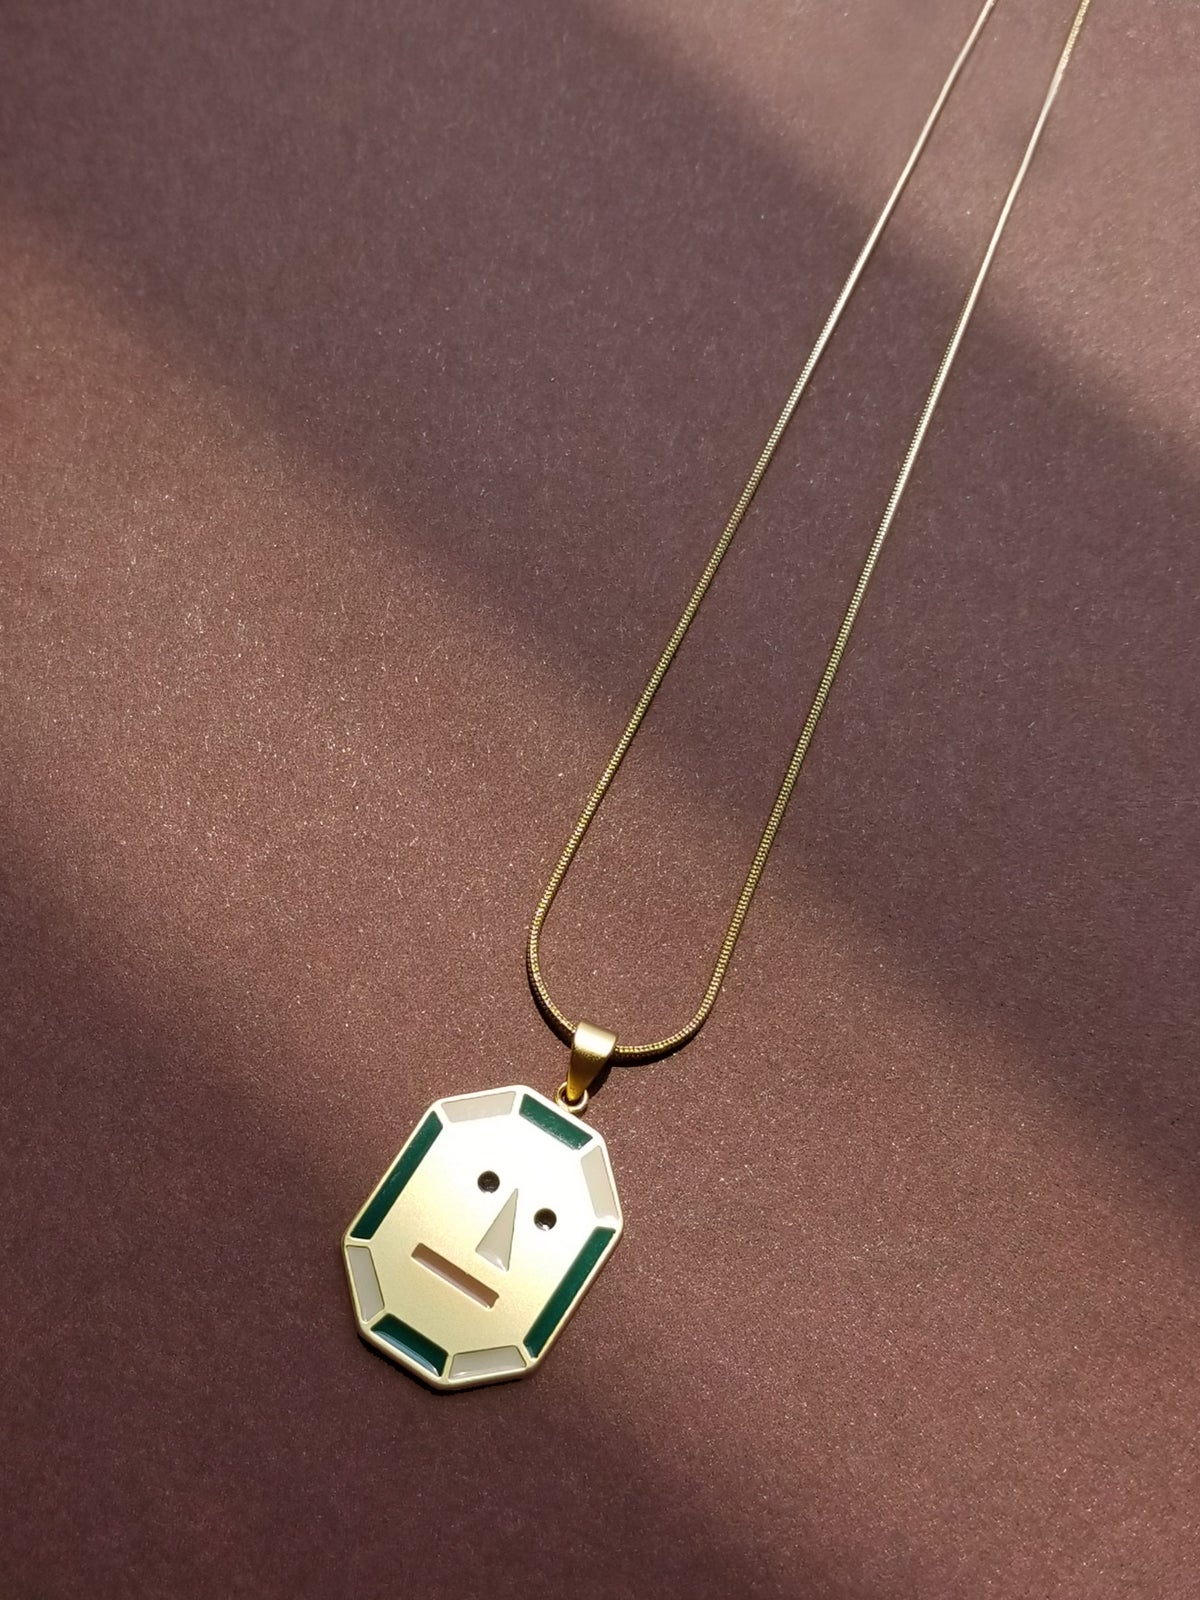 Image of JOY + PEACE - reversible necklace- Green + Pink • Stainless steel